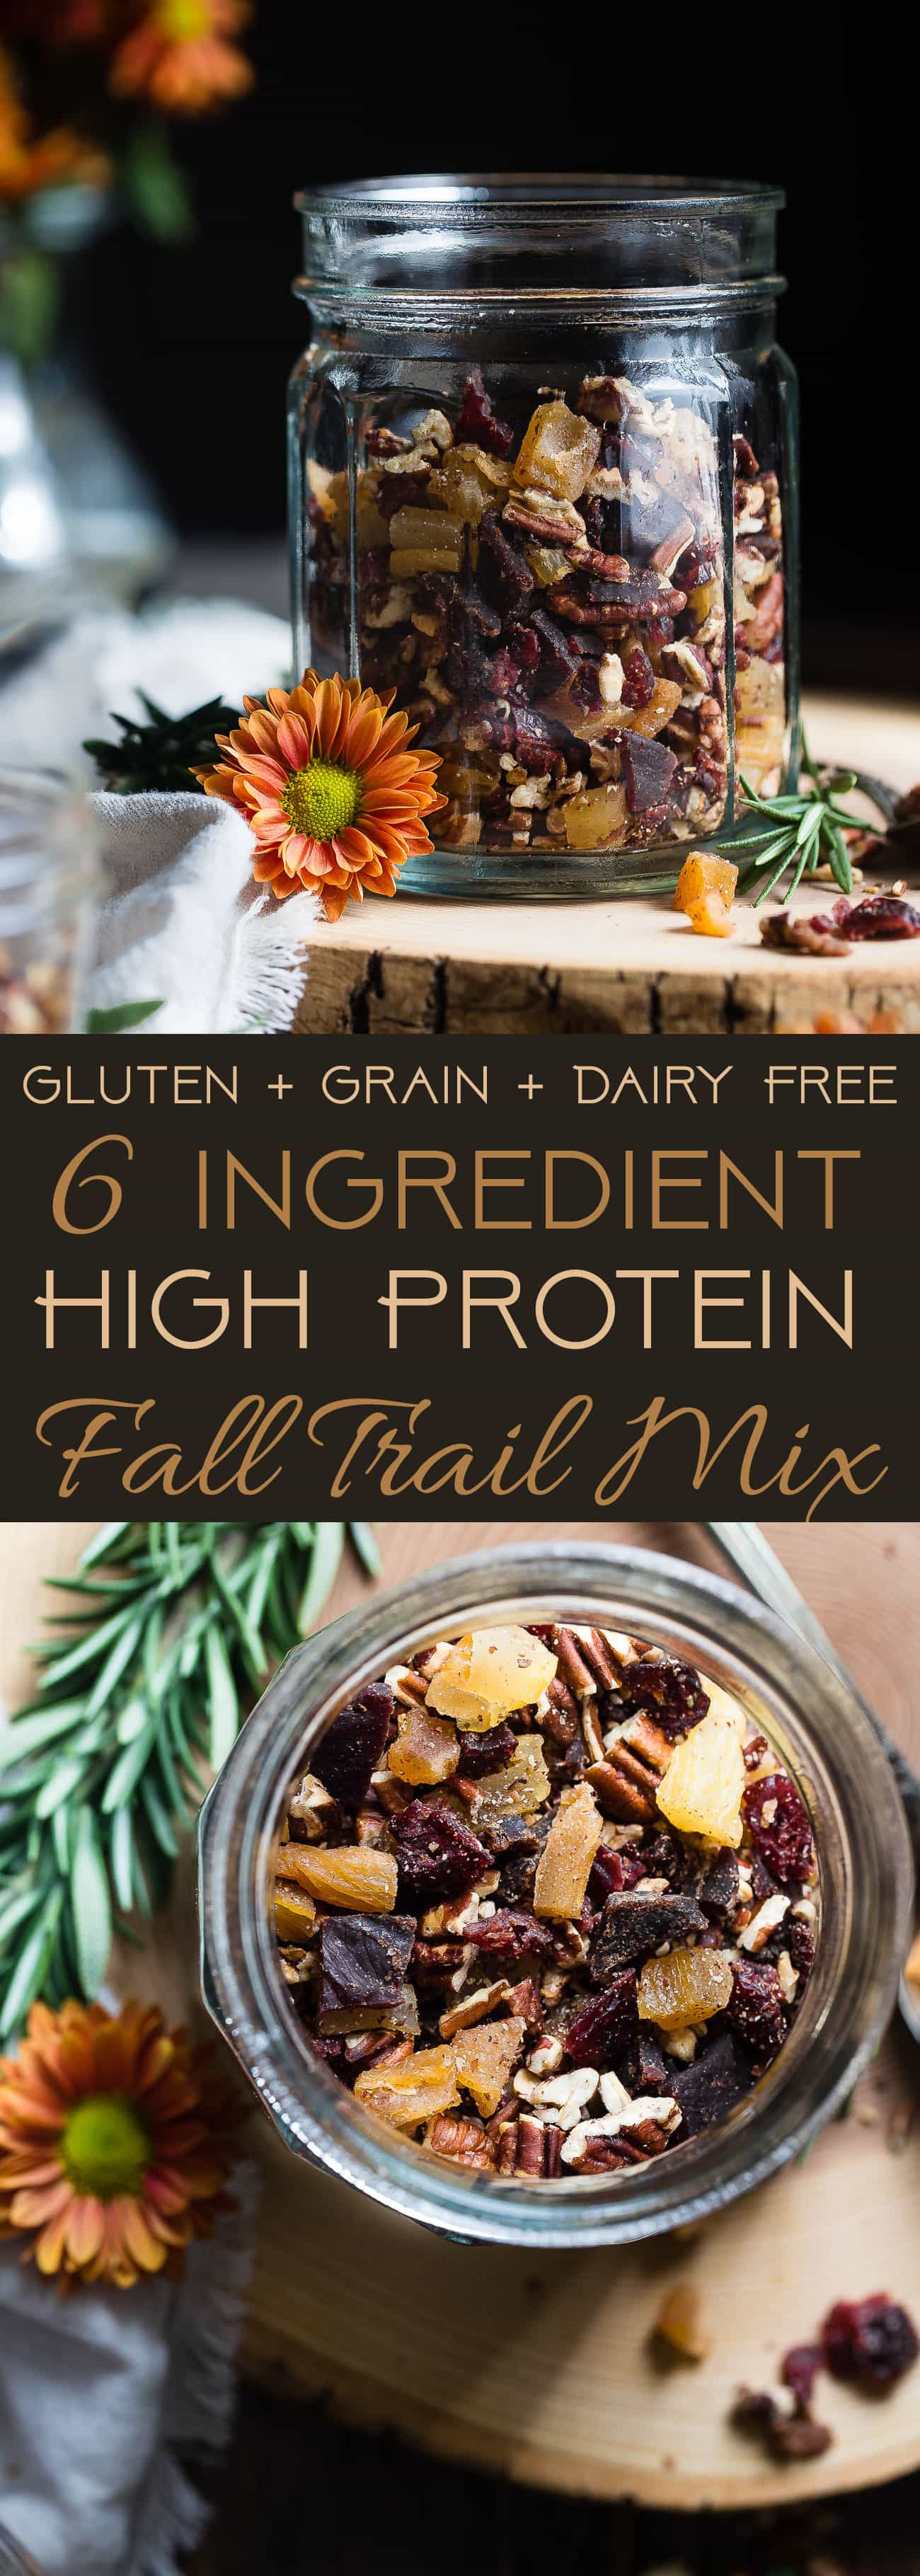 Protein Packed Fall Trail Mix - This quick and easy fall trail mix recipe only uses 6 ingredients and is secretly high in protein! It's a healthy gluten, grain and dairy free portable snack for busy days that is adult and kid friendly! | Foodfaithfitness.com | @FoodFaithFit | Homemade trail mix recipe. sweet trail mix recipe. easy trail mix recipe. trail mix recipe for kids. healthy trail mix recipe. protein trail mix recipe. trail mix for kids. savory trail mix recipe.